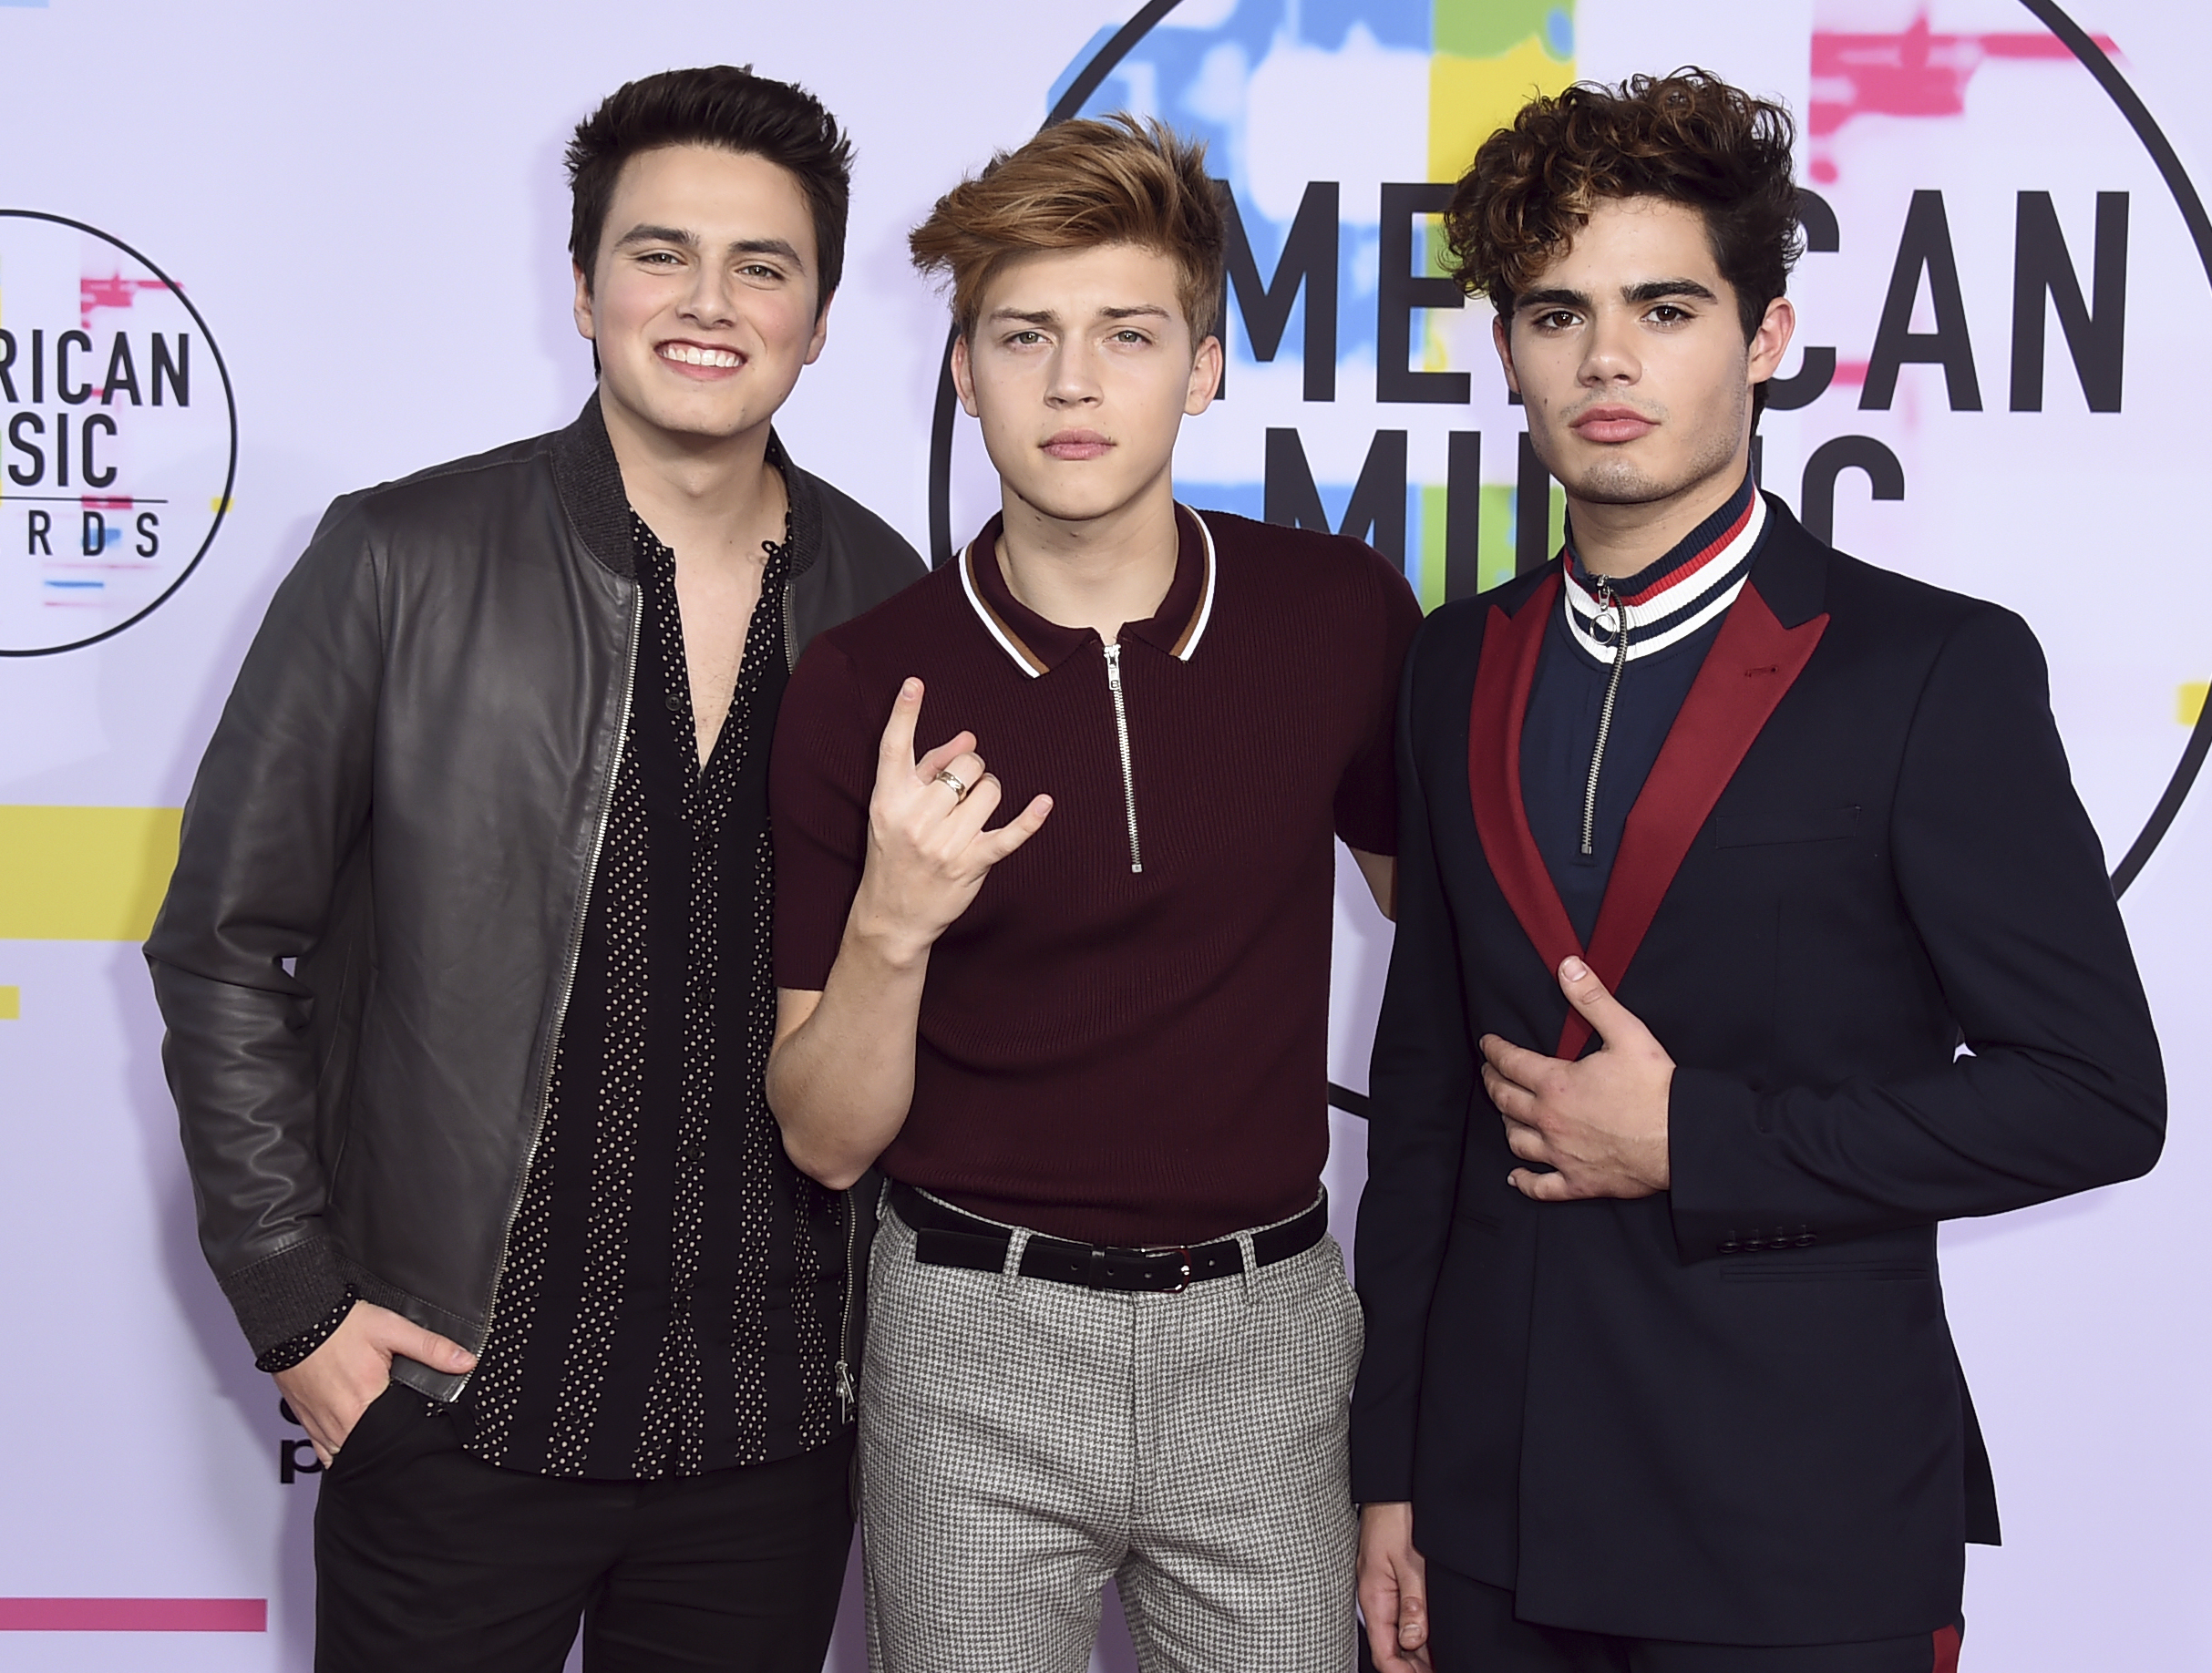 <div class='meta'><div class='origin-logo' data-origin='none'></div><span class='caption-text' data-credit='Jordan Strauss/Invision/AP'>Liam Attridge, from left, Ricky Garcia, and Emery Kelly of Forever in Your Mind arrive at the American Music Awards at the Microsoft Theater.</span></div>